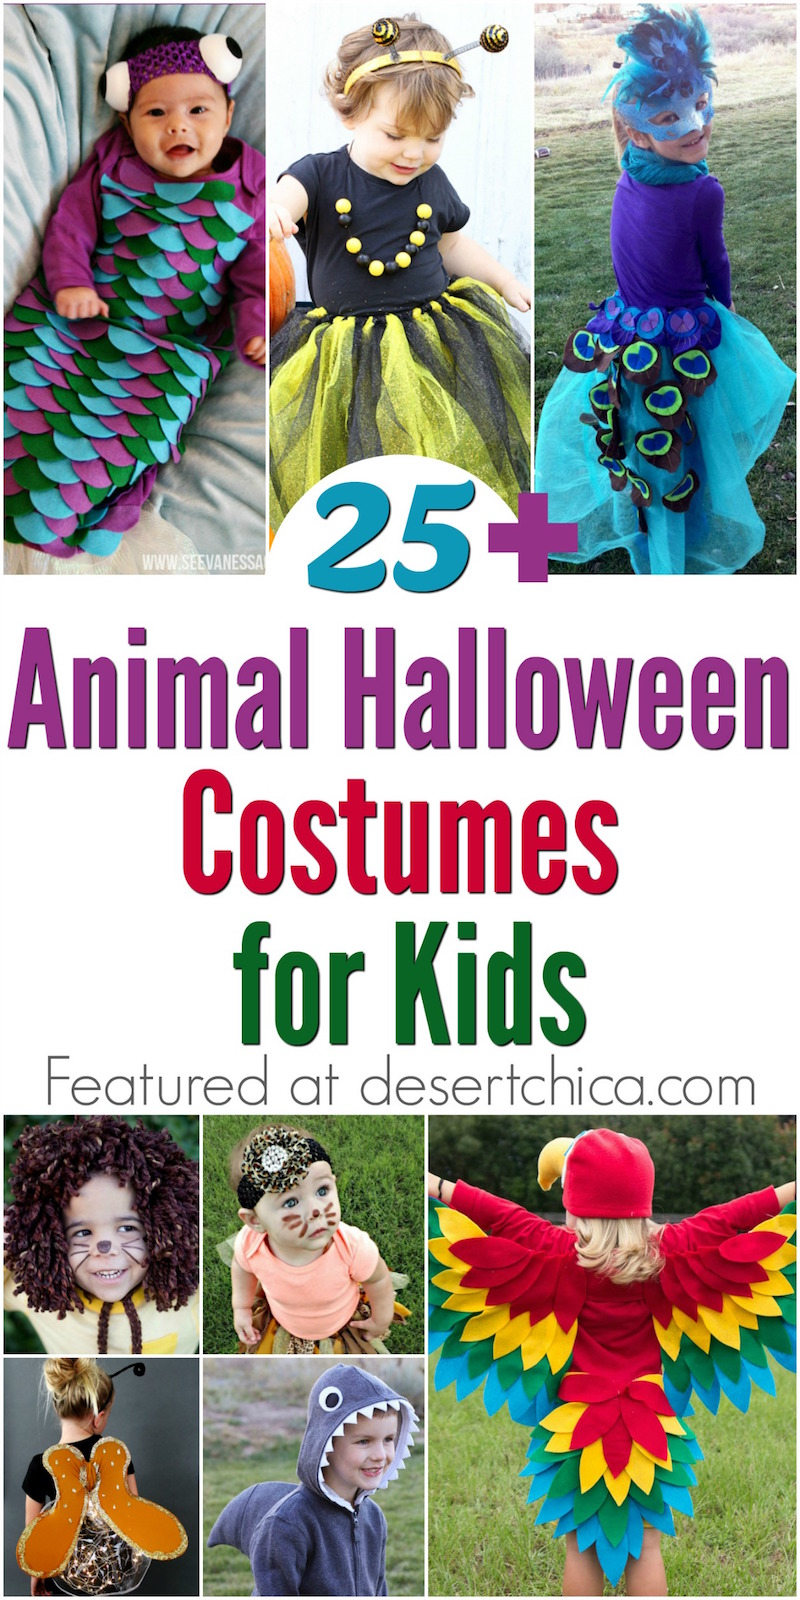 Over 25 Animal Costume costumes for kids